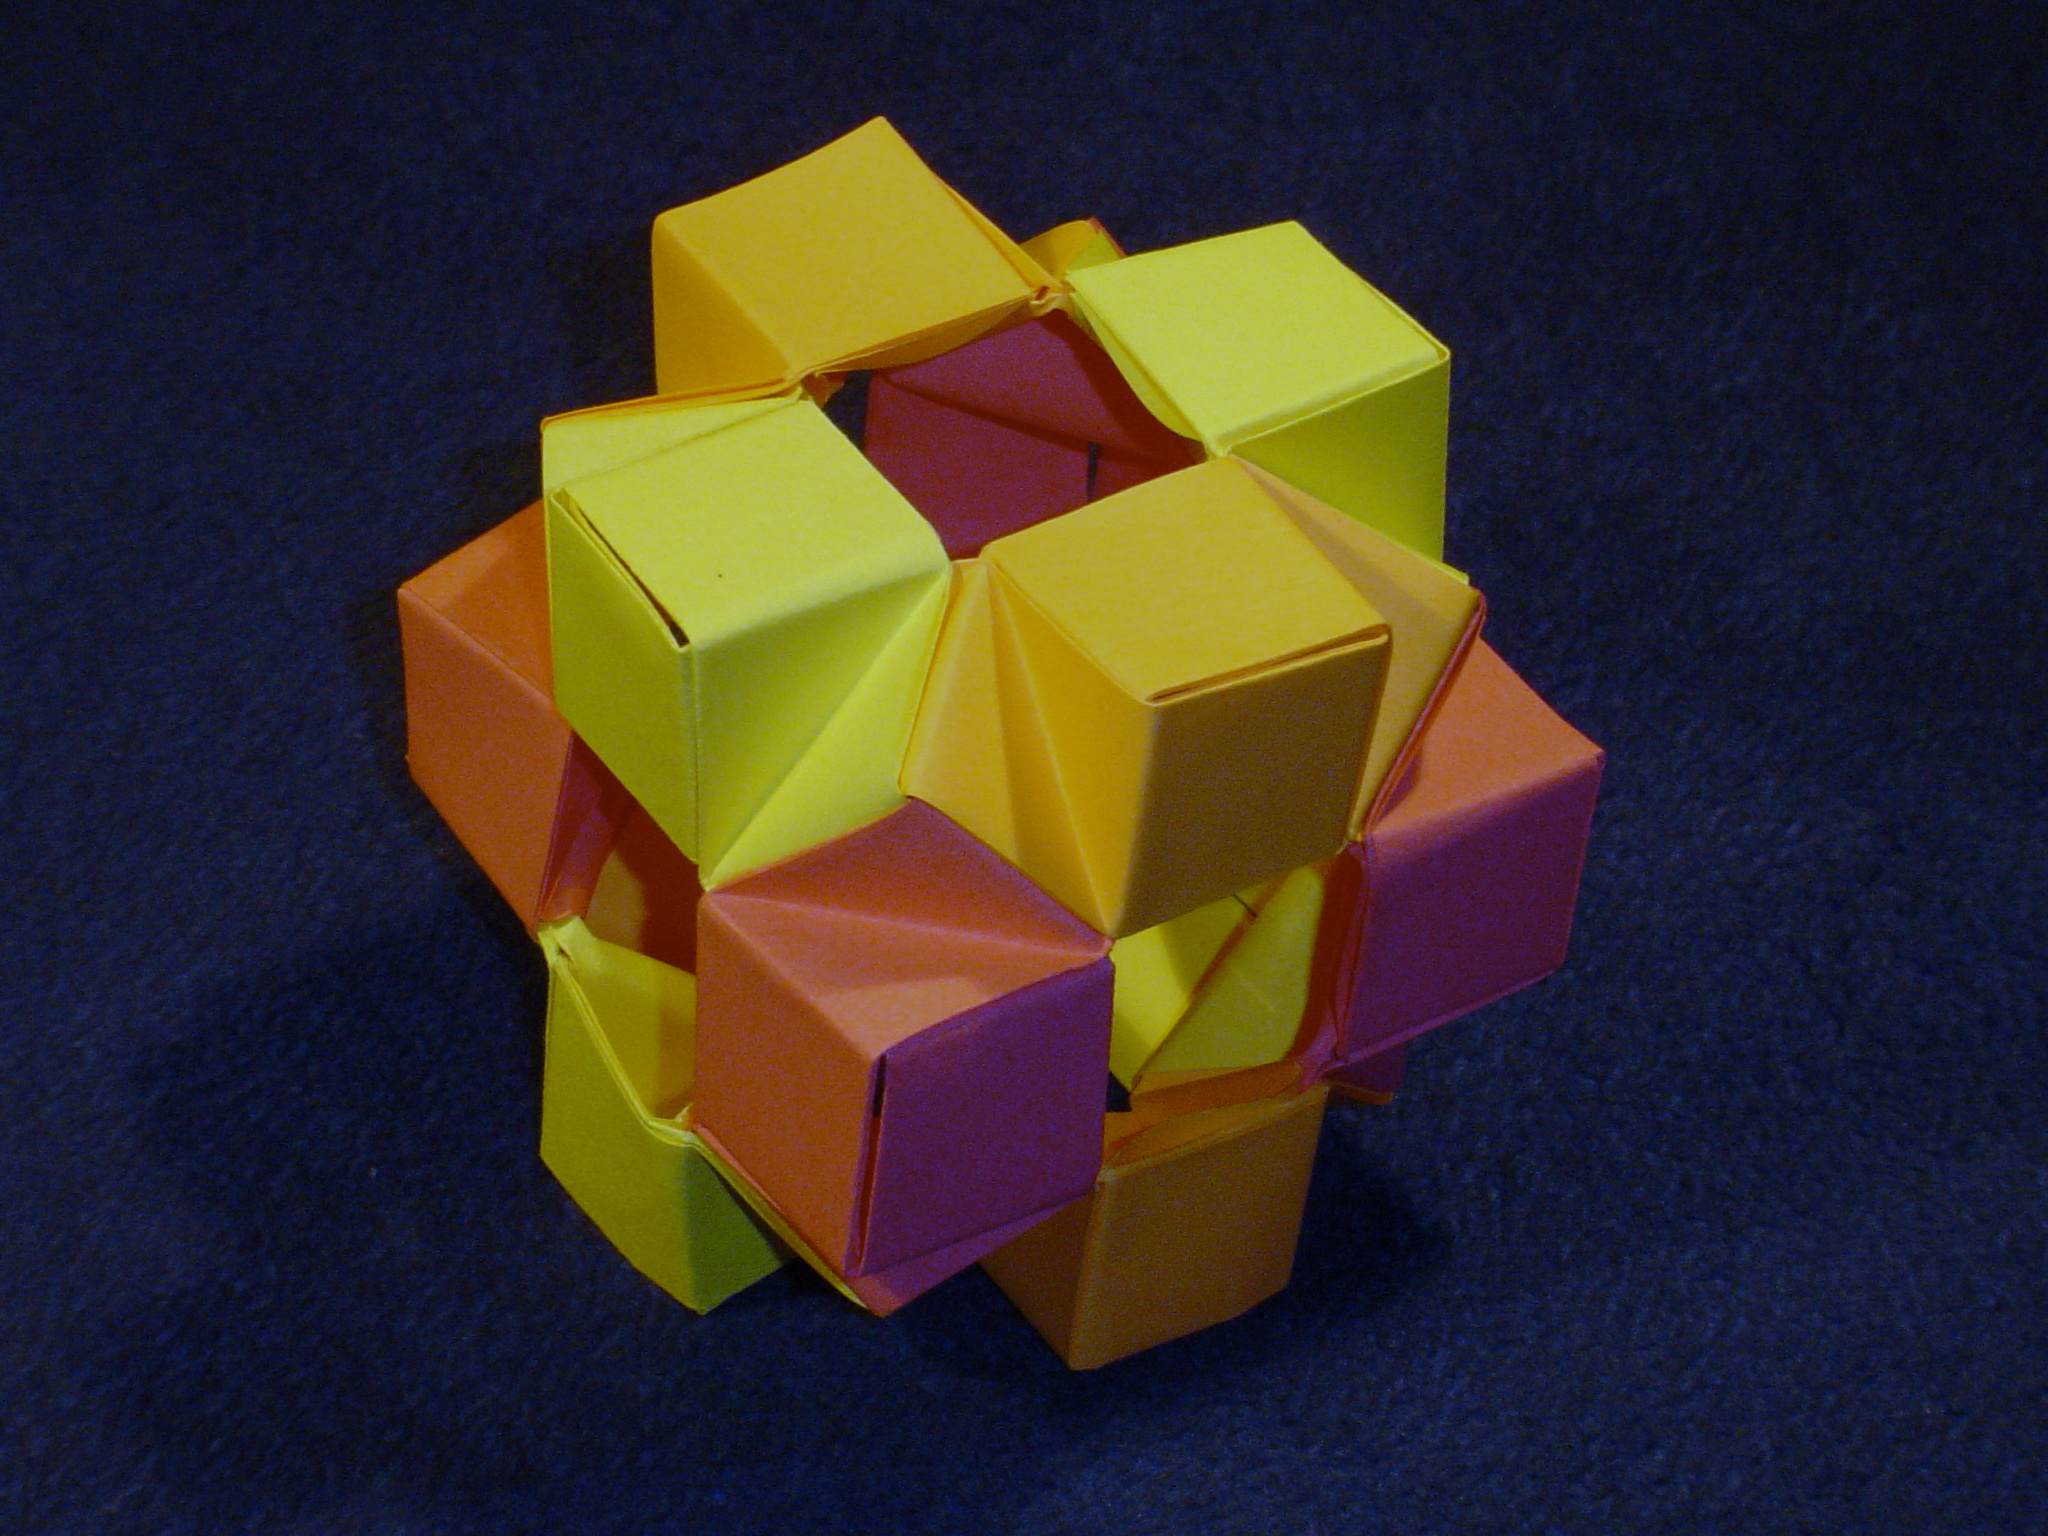 Modular Origami - balls and polyhedra folded by Michał Kosmulski.